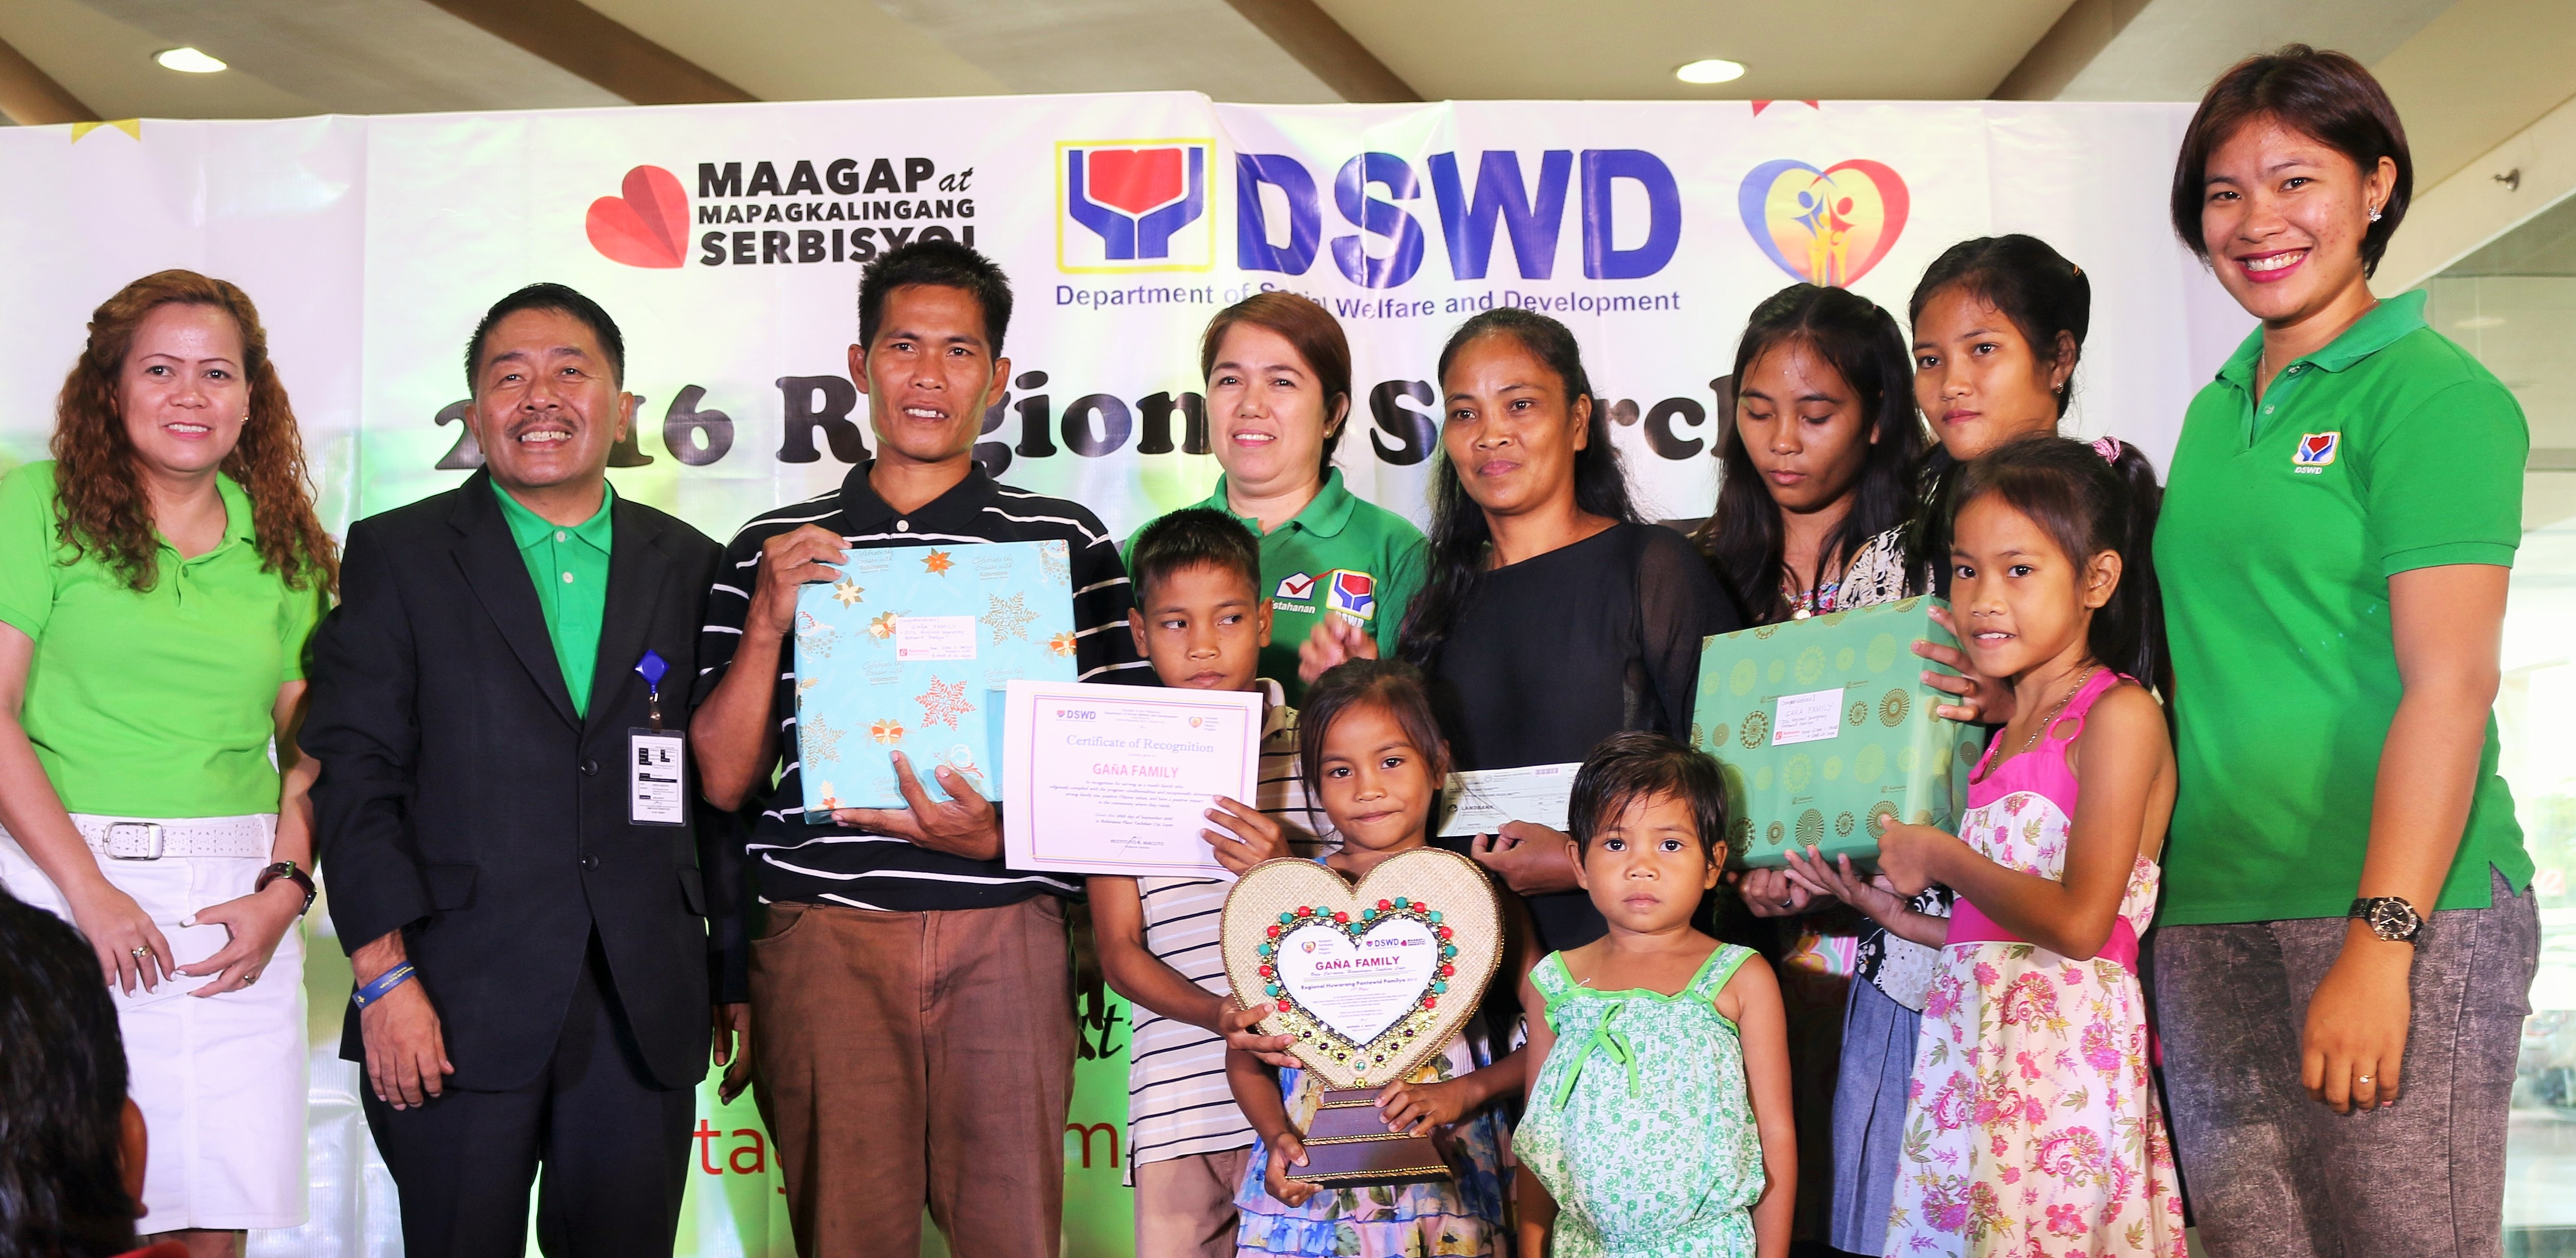 DSWD-8 Regional Director Restituto B.Macuto awards the Huwarang Pantawid Pamilyang Pilipino to the Gana Family of Southern Leyte in a simple